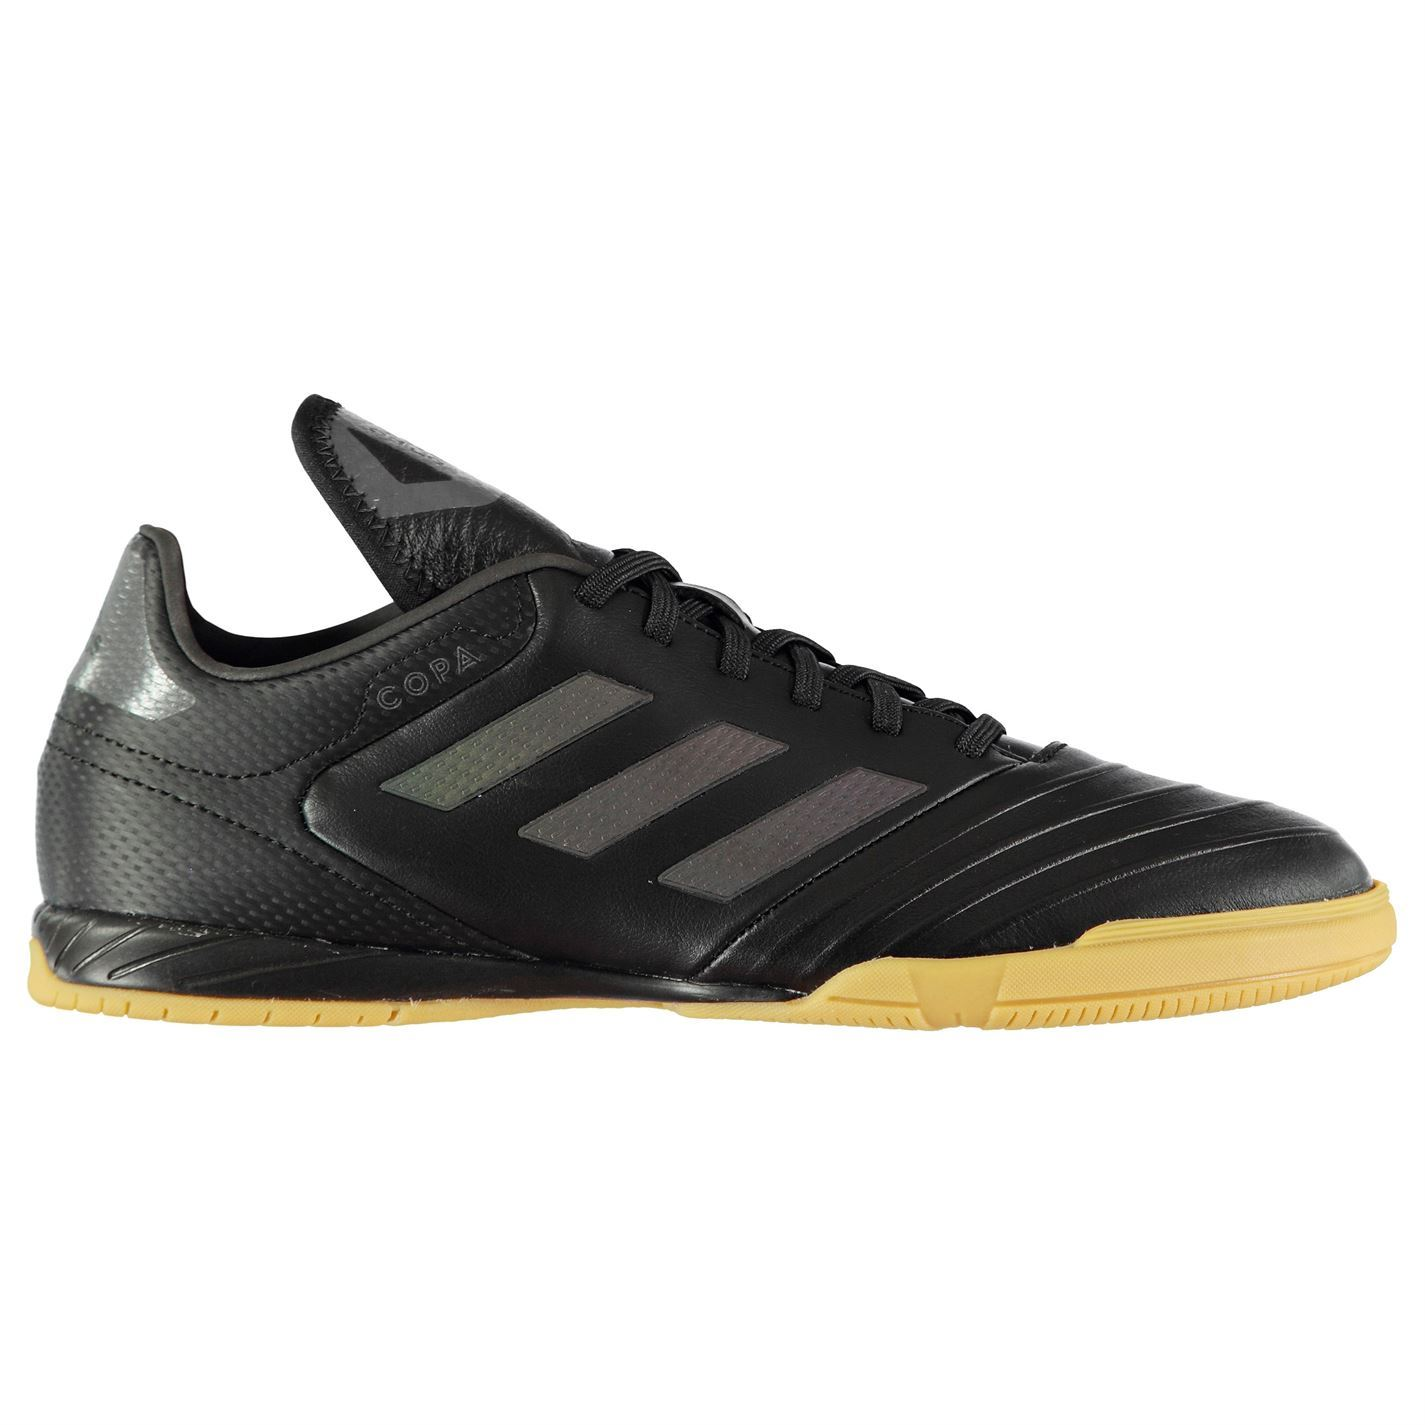 the latest 4038b 2c5bc adidas Mens Copa Tango 18.3 Indoor Football Trainers Boots Lace Up Padded  Ankle